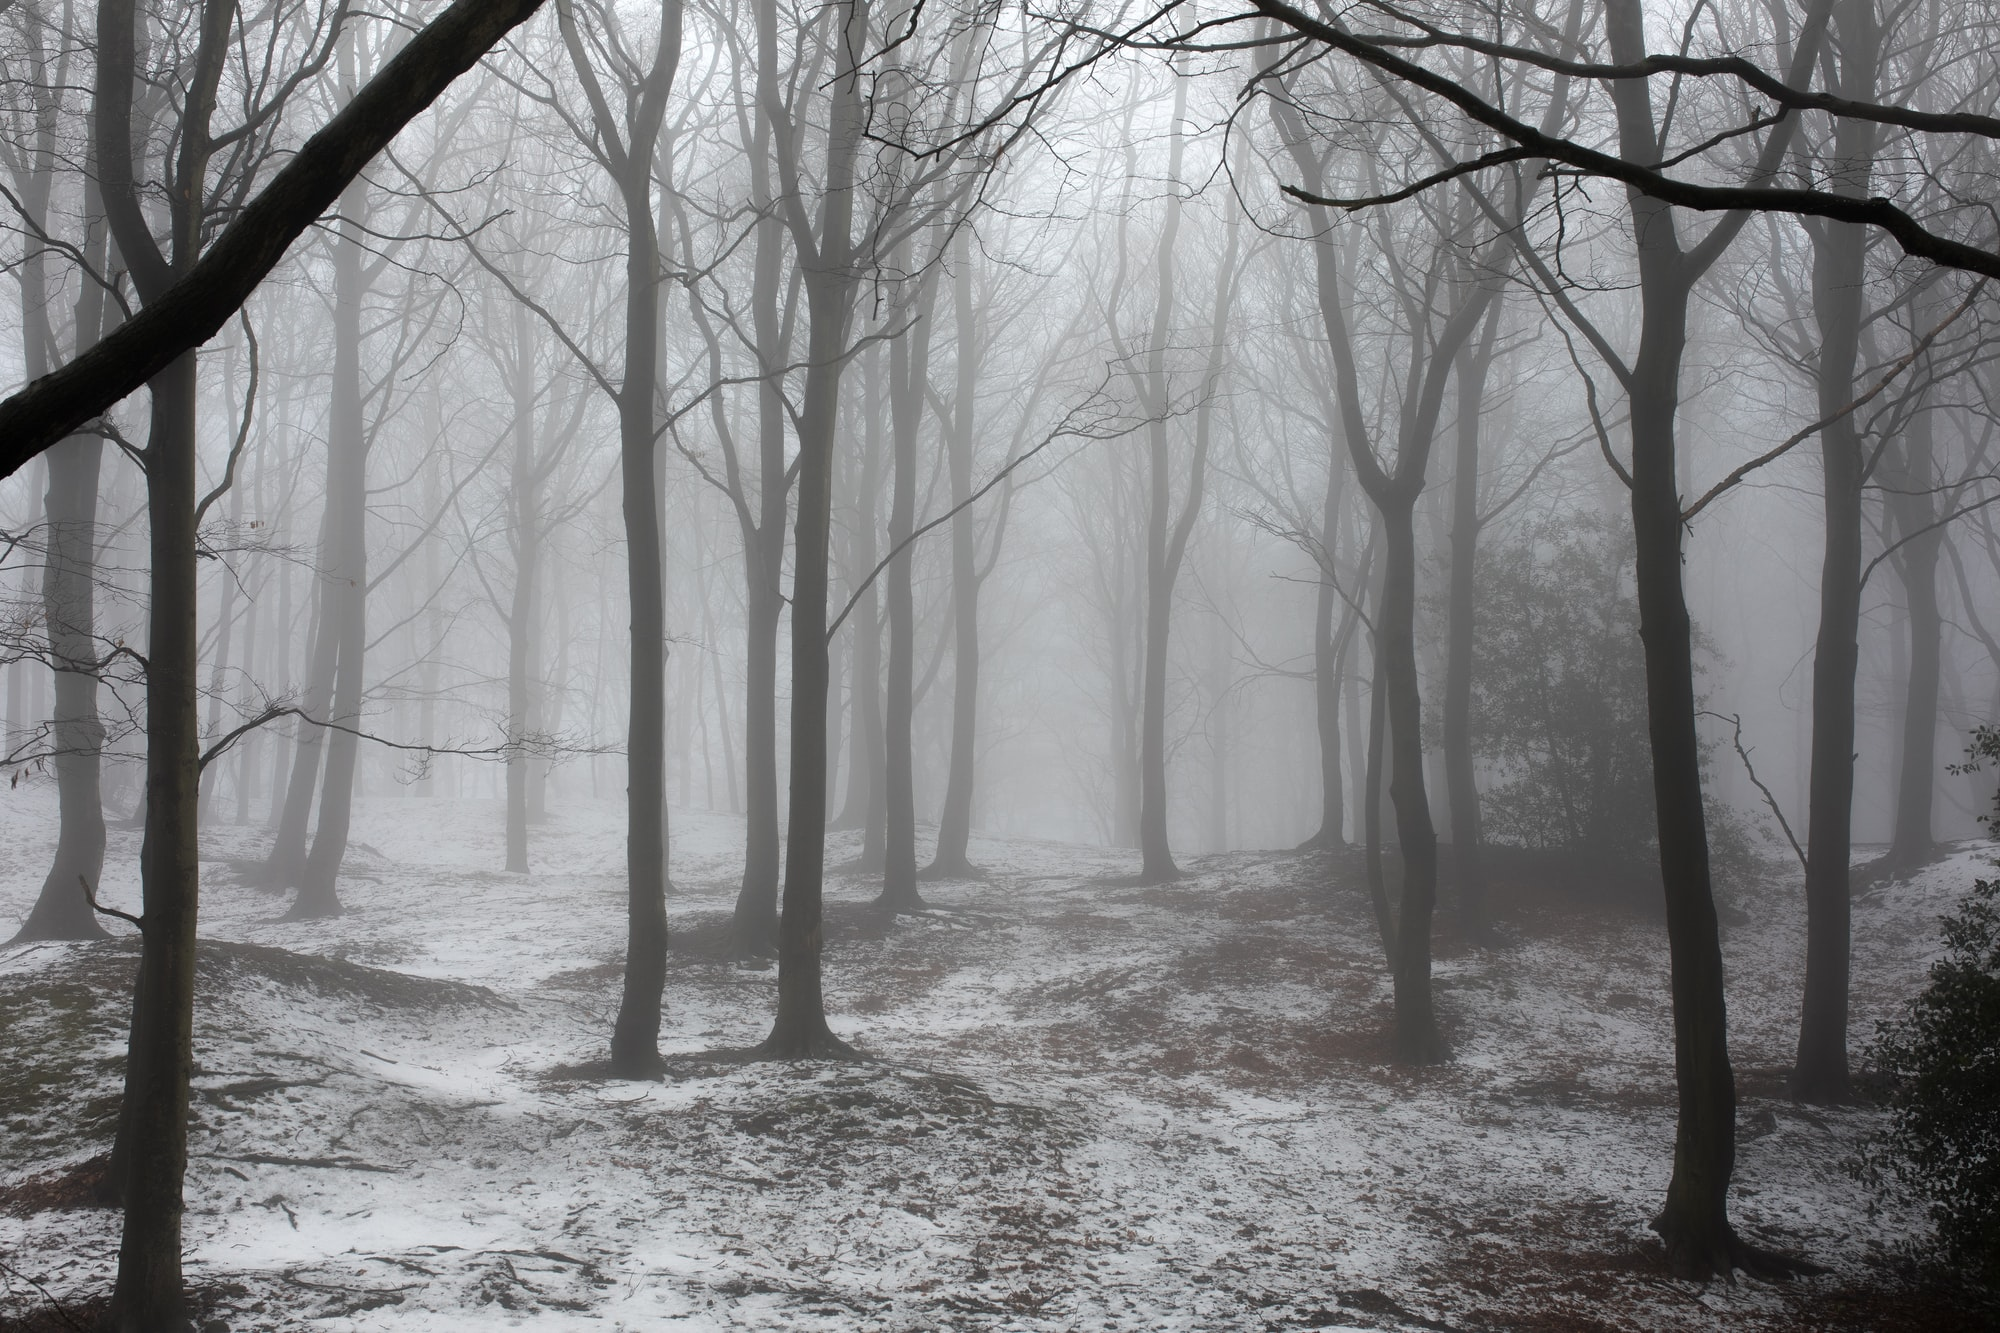 Trees in snow and fog